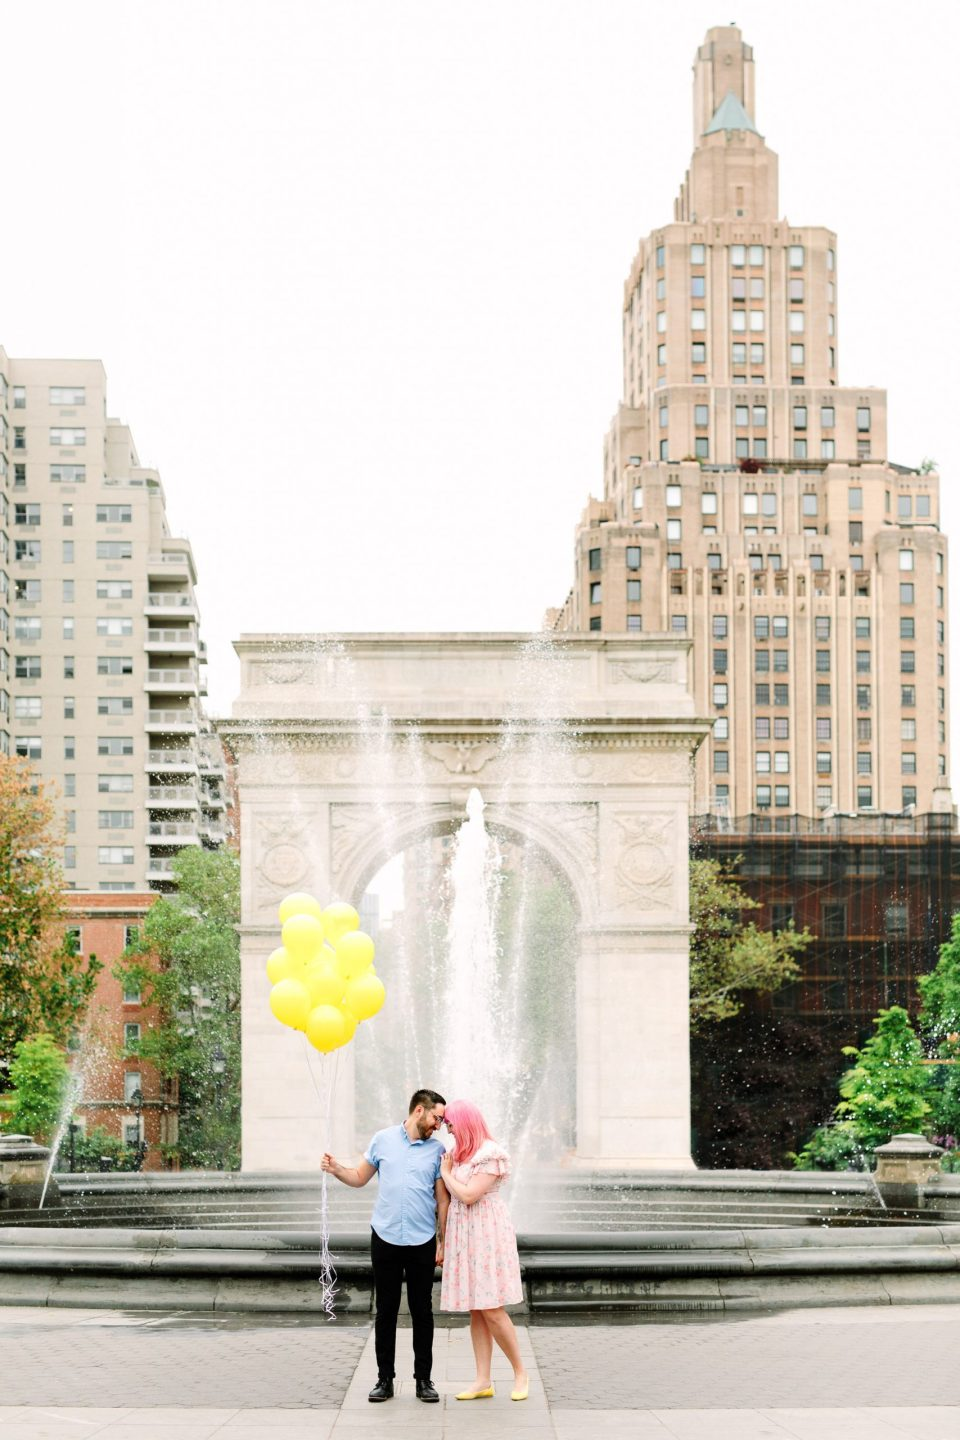 Engagement session at Washington Square Park by Mary Costa Photography